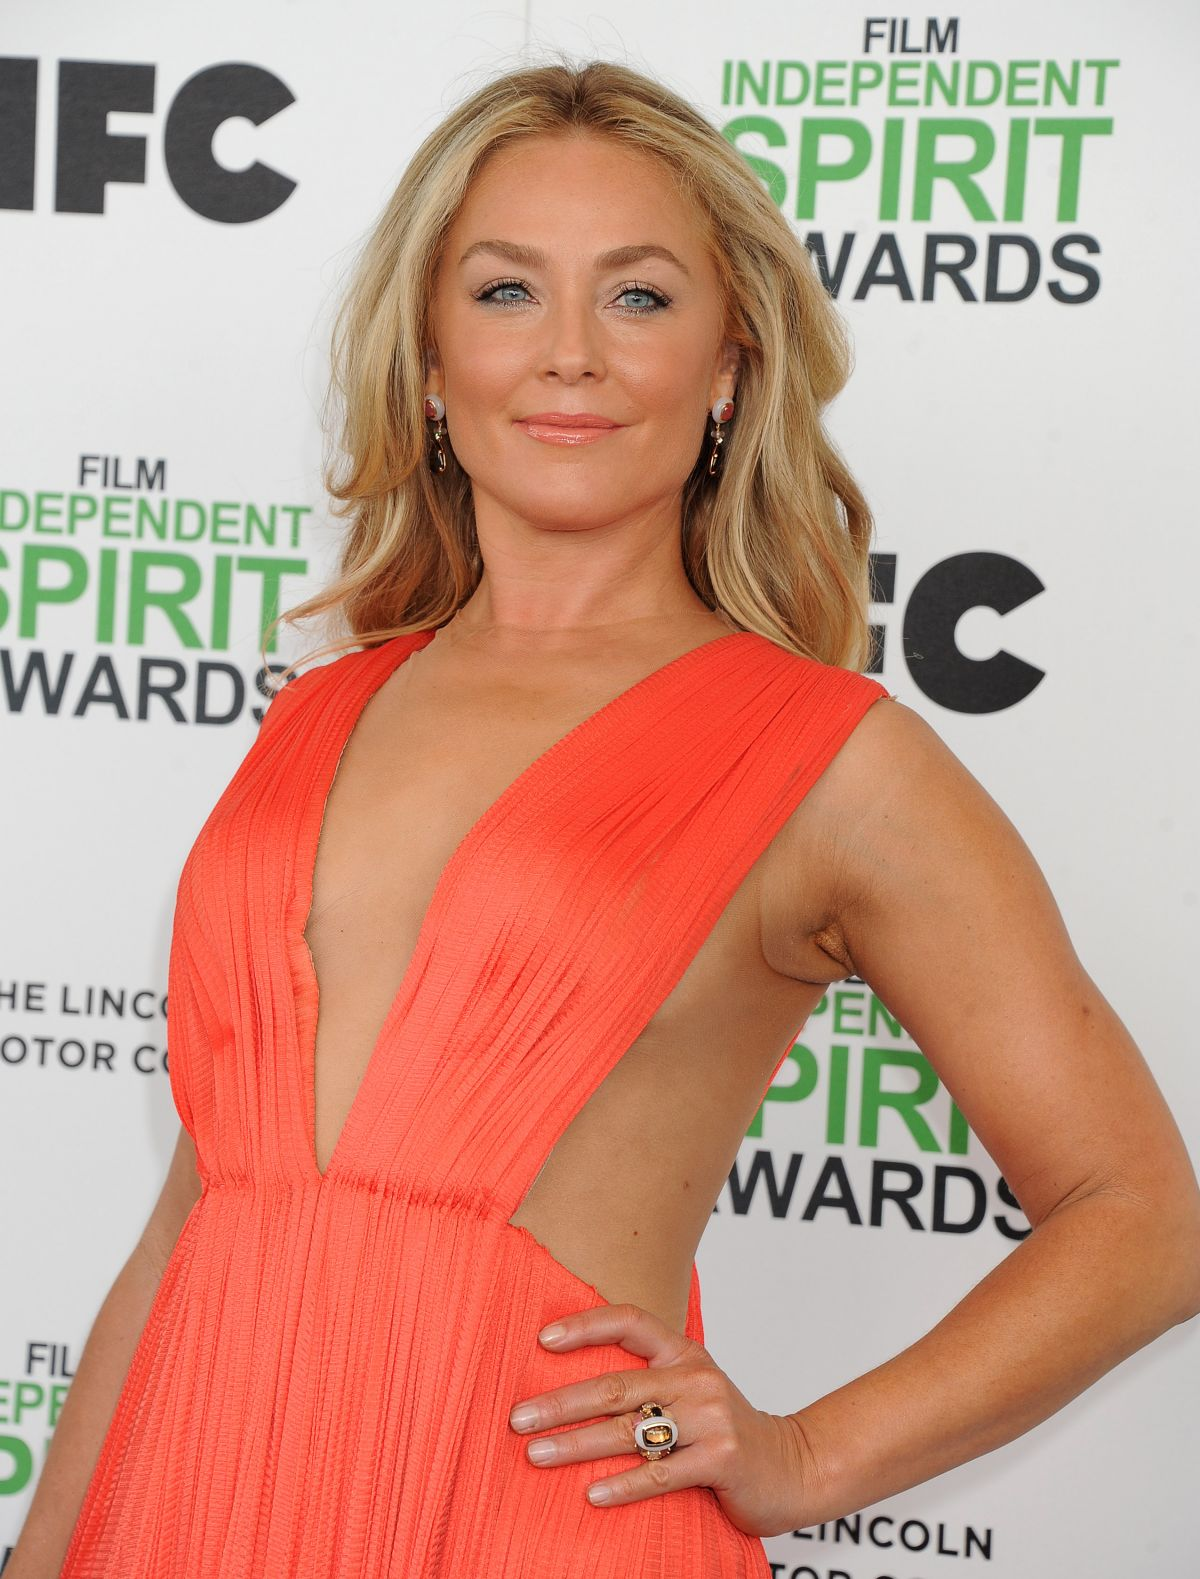 Elisabeth Röhm earned a  million dollar salary, leaving the net worth at 1 million in 2017